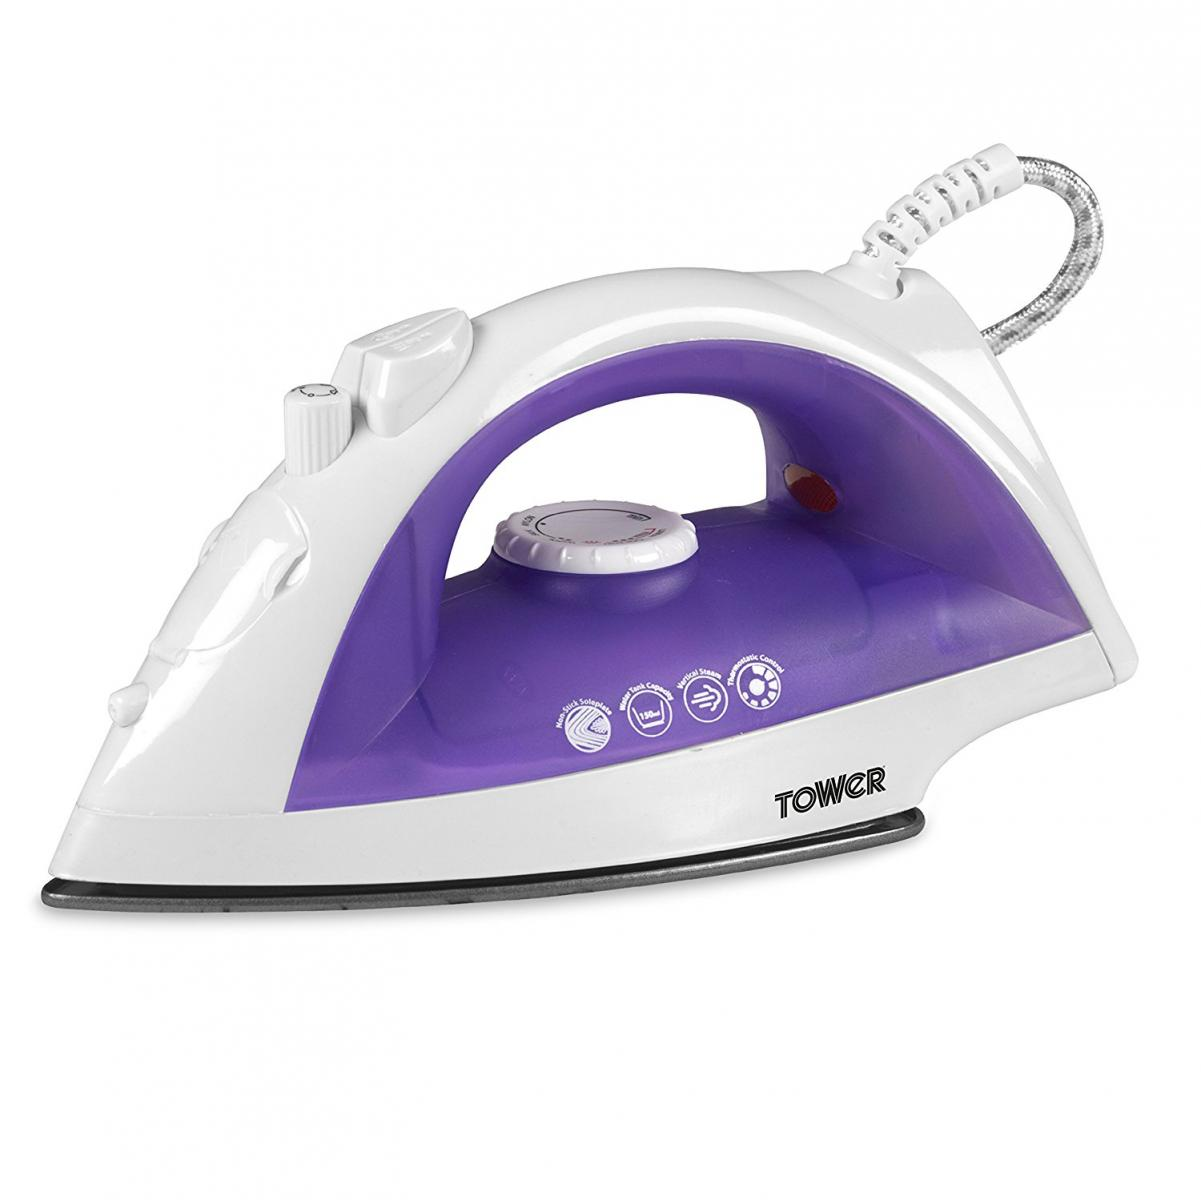 2000W Steam Iron – Now Only £12.00